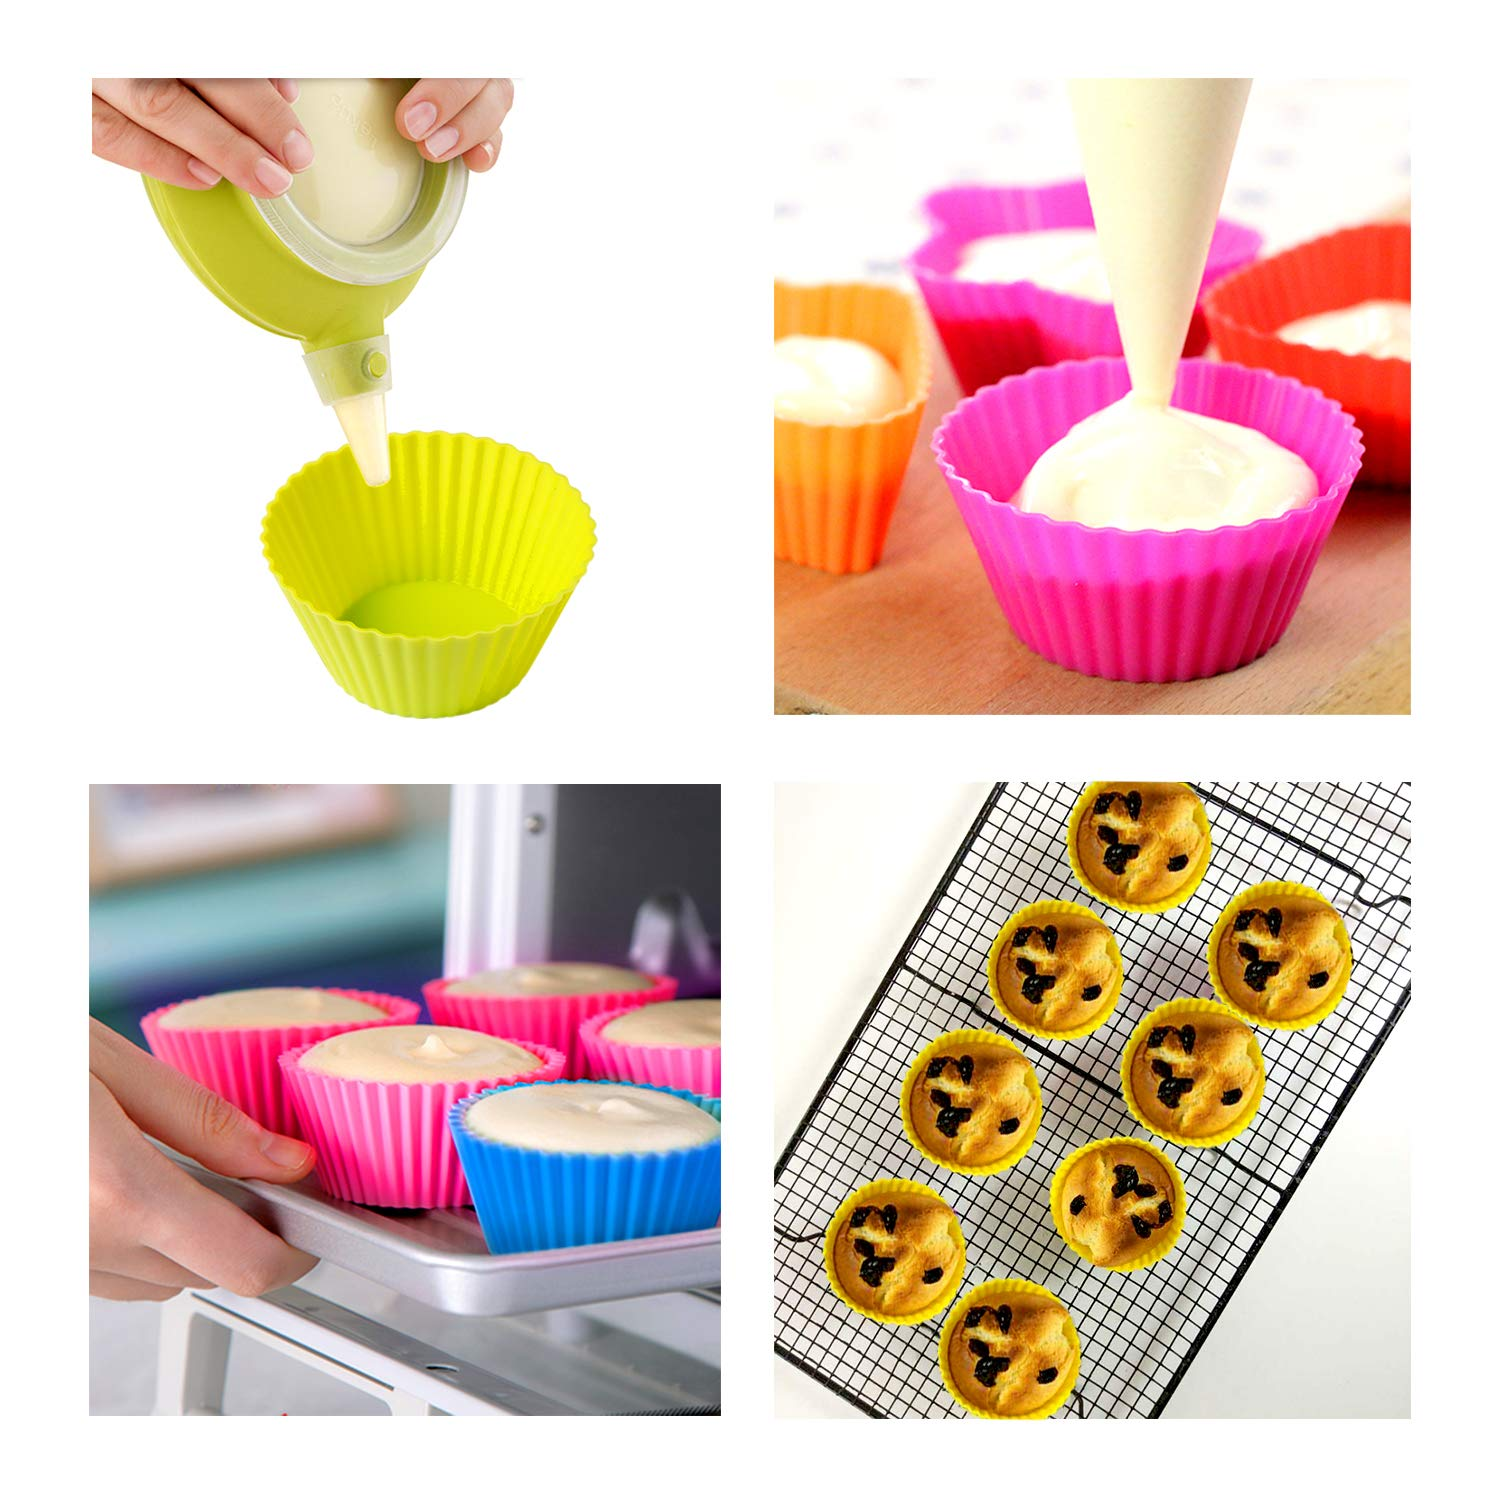 WARMWIND Silicone Muffin Cups, Food Grade Cupcake Baking Mold, 36-Pack Cake Cup Sets, Reusable Baking Cups, Non-Stick Cupcake Liners, Dishwasher Safe by WARMWIND (Image #5)